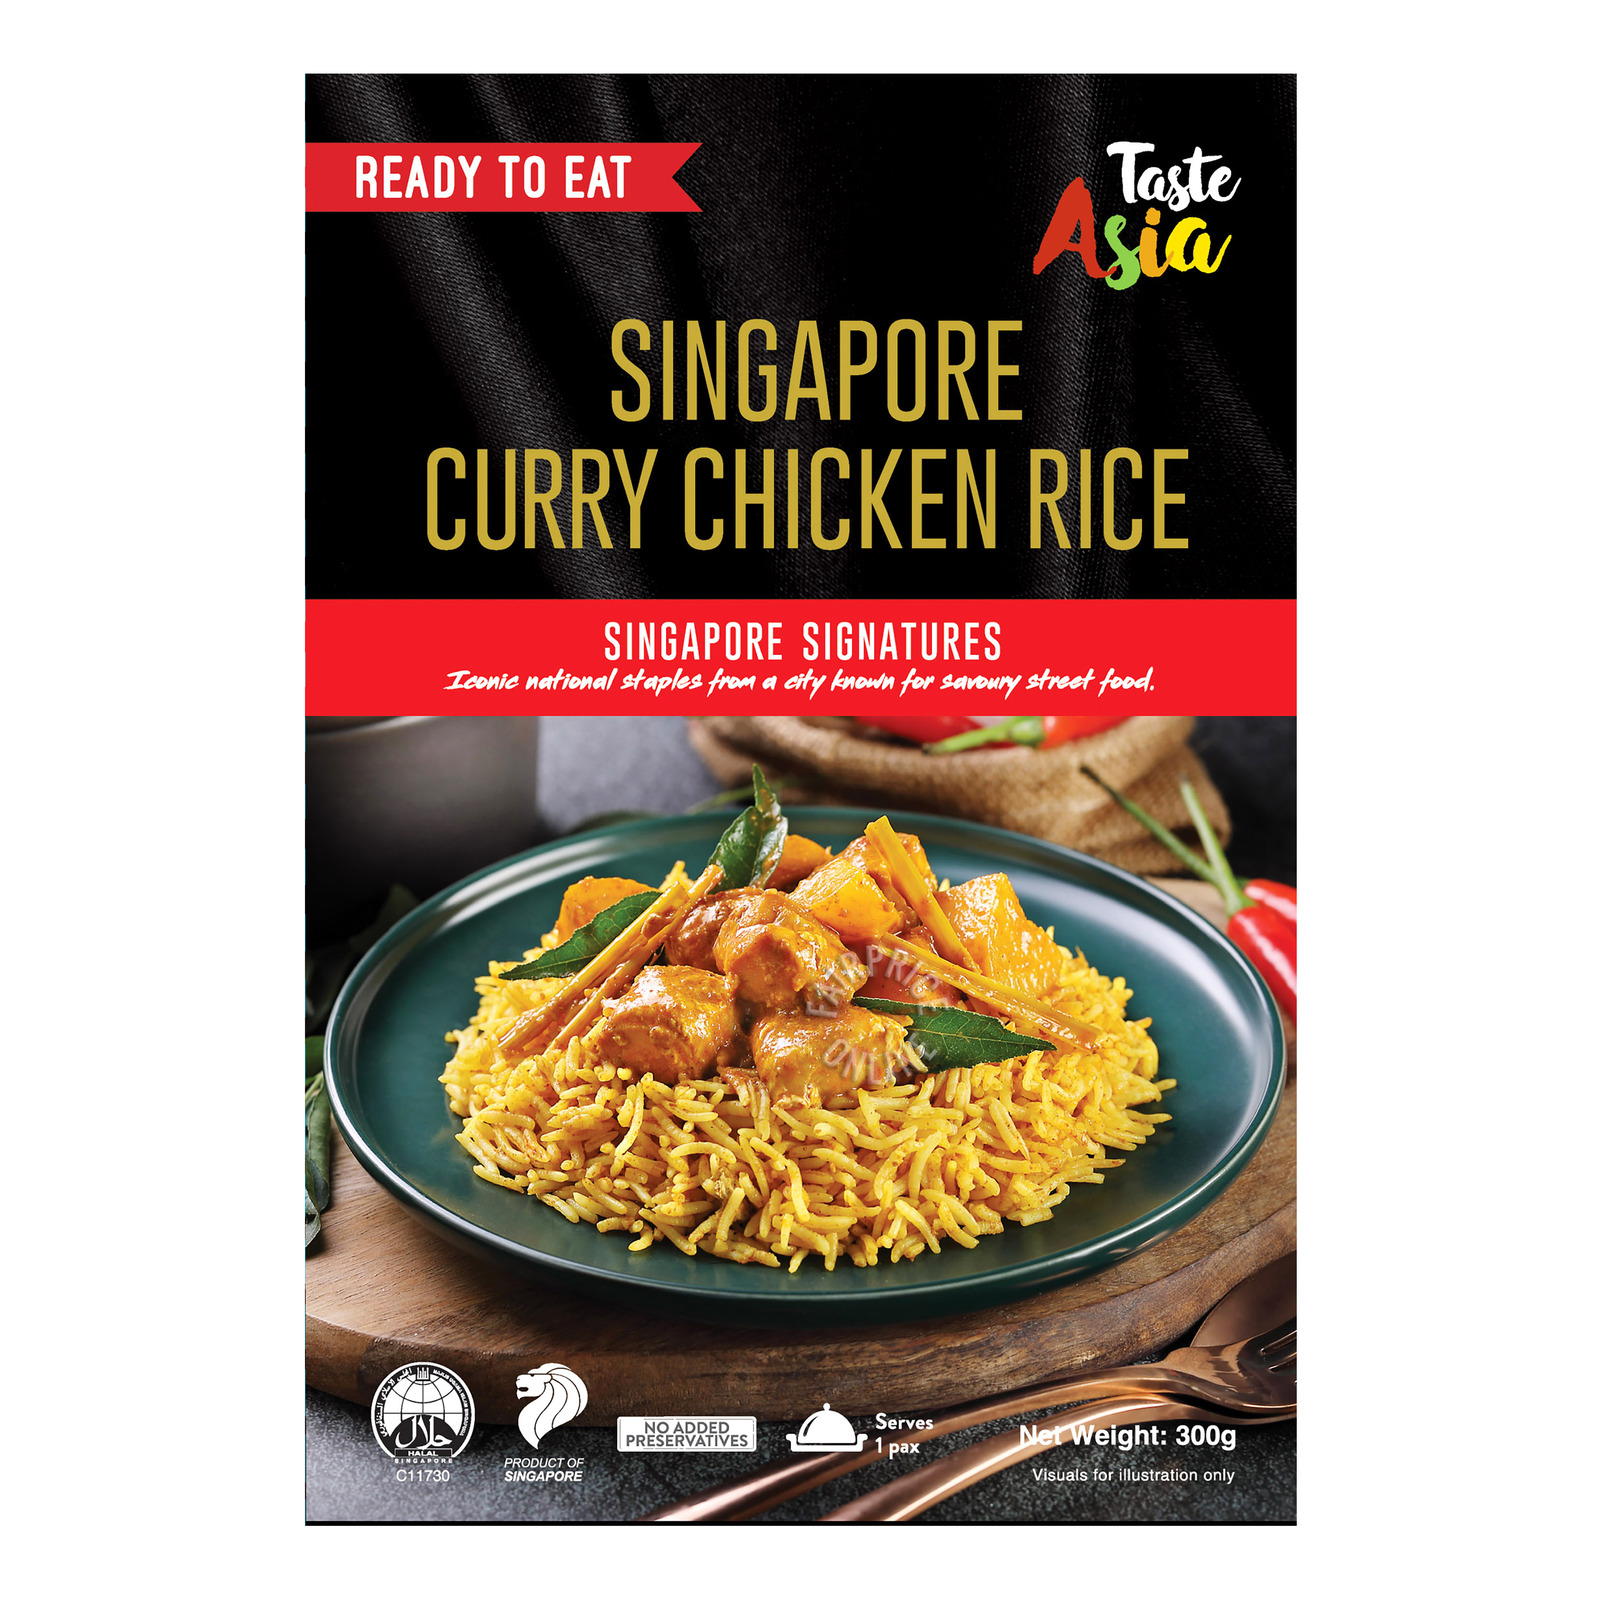 Taste Asia Ready To Eat Meal - Singapore Curry Chicken Rice